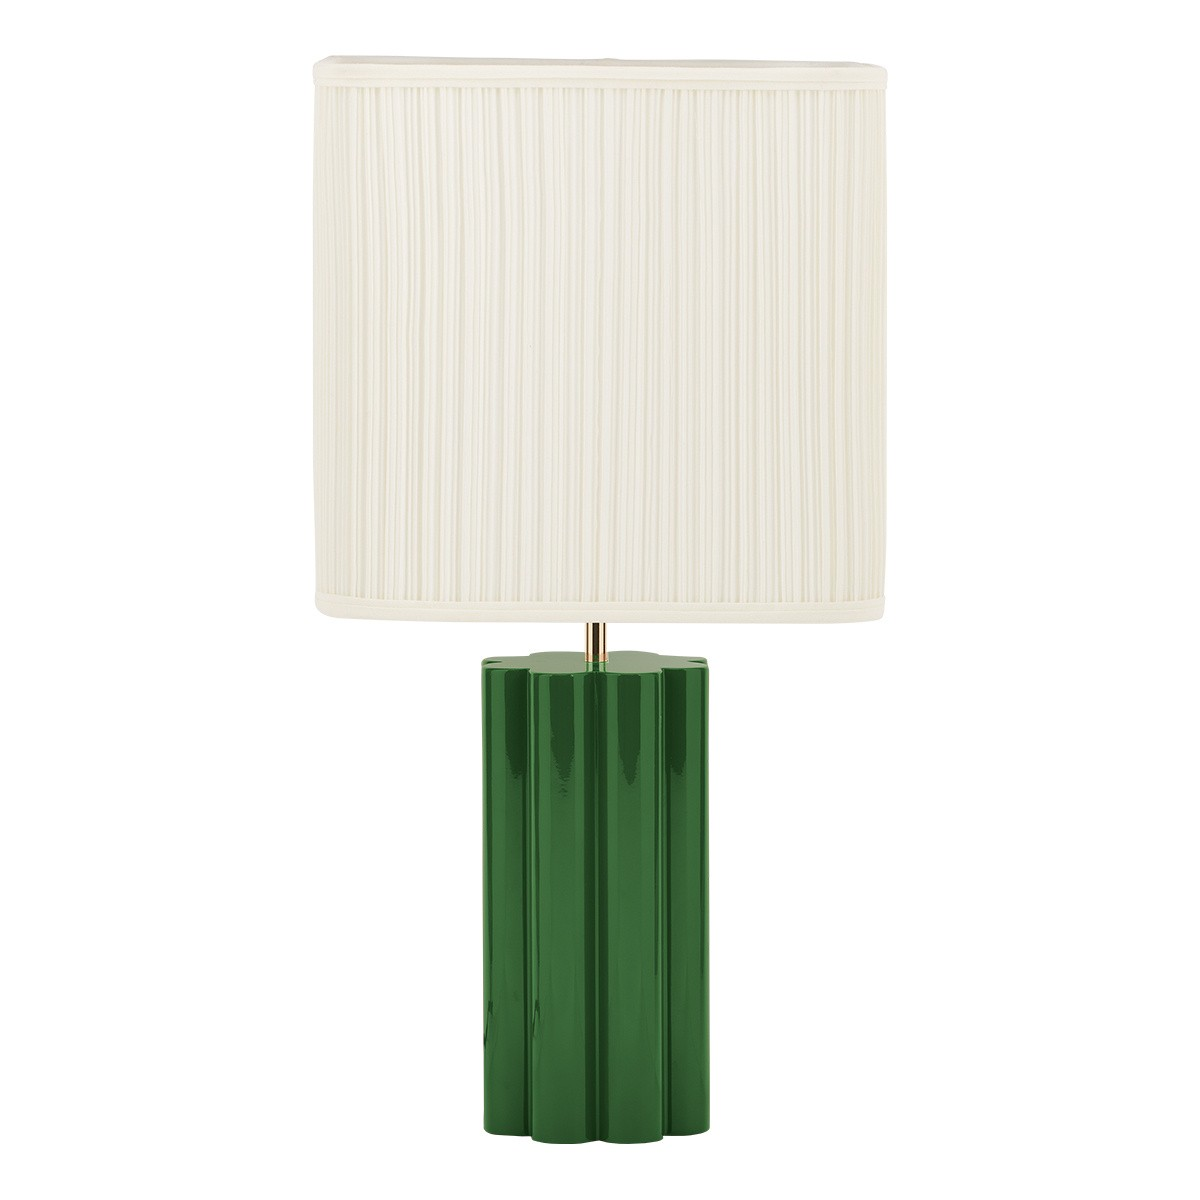 Gioia Table Lamp, Green